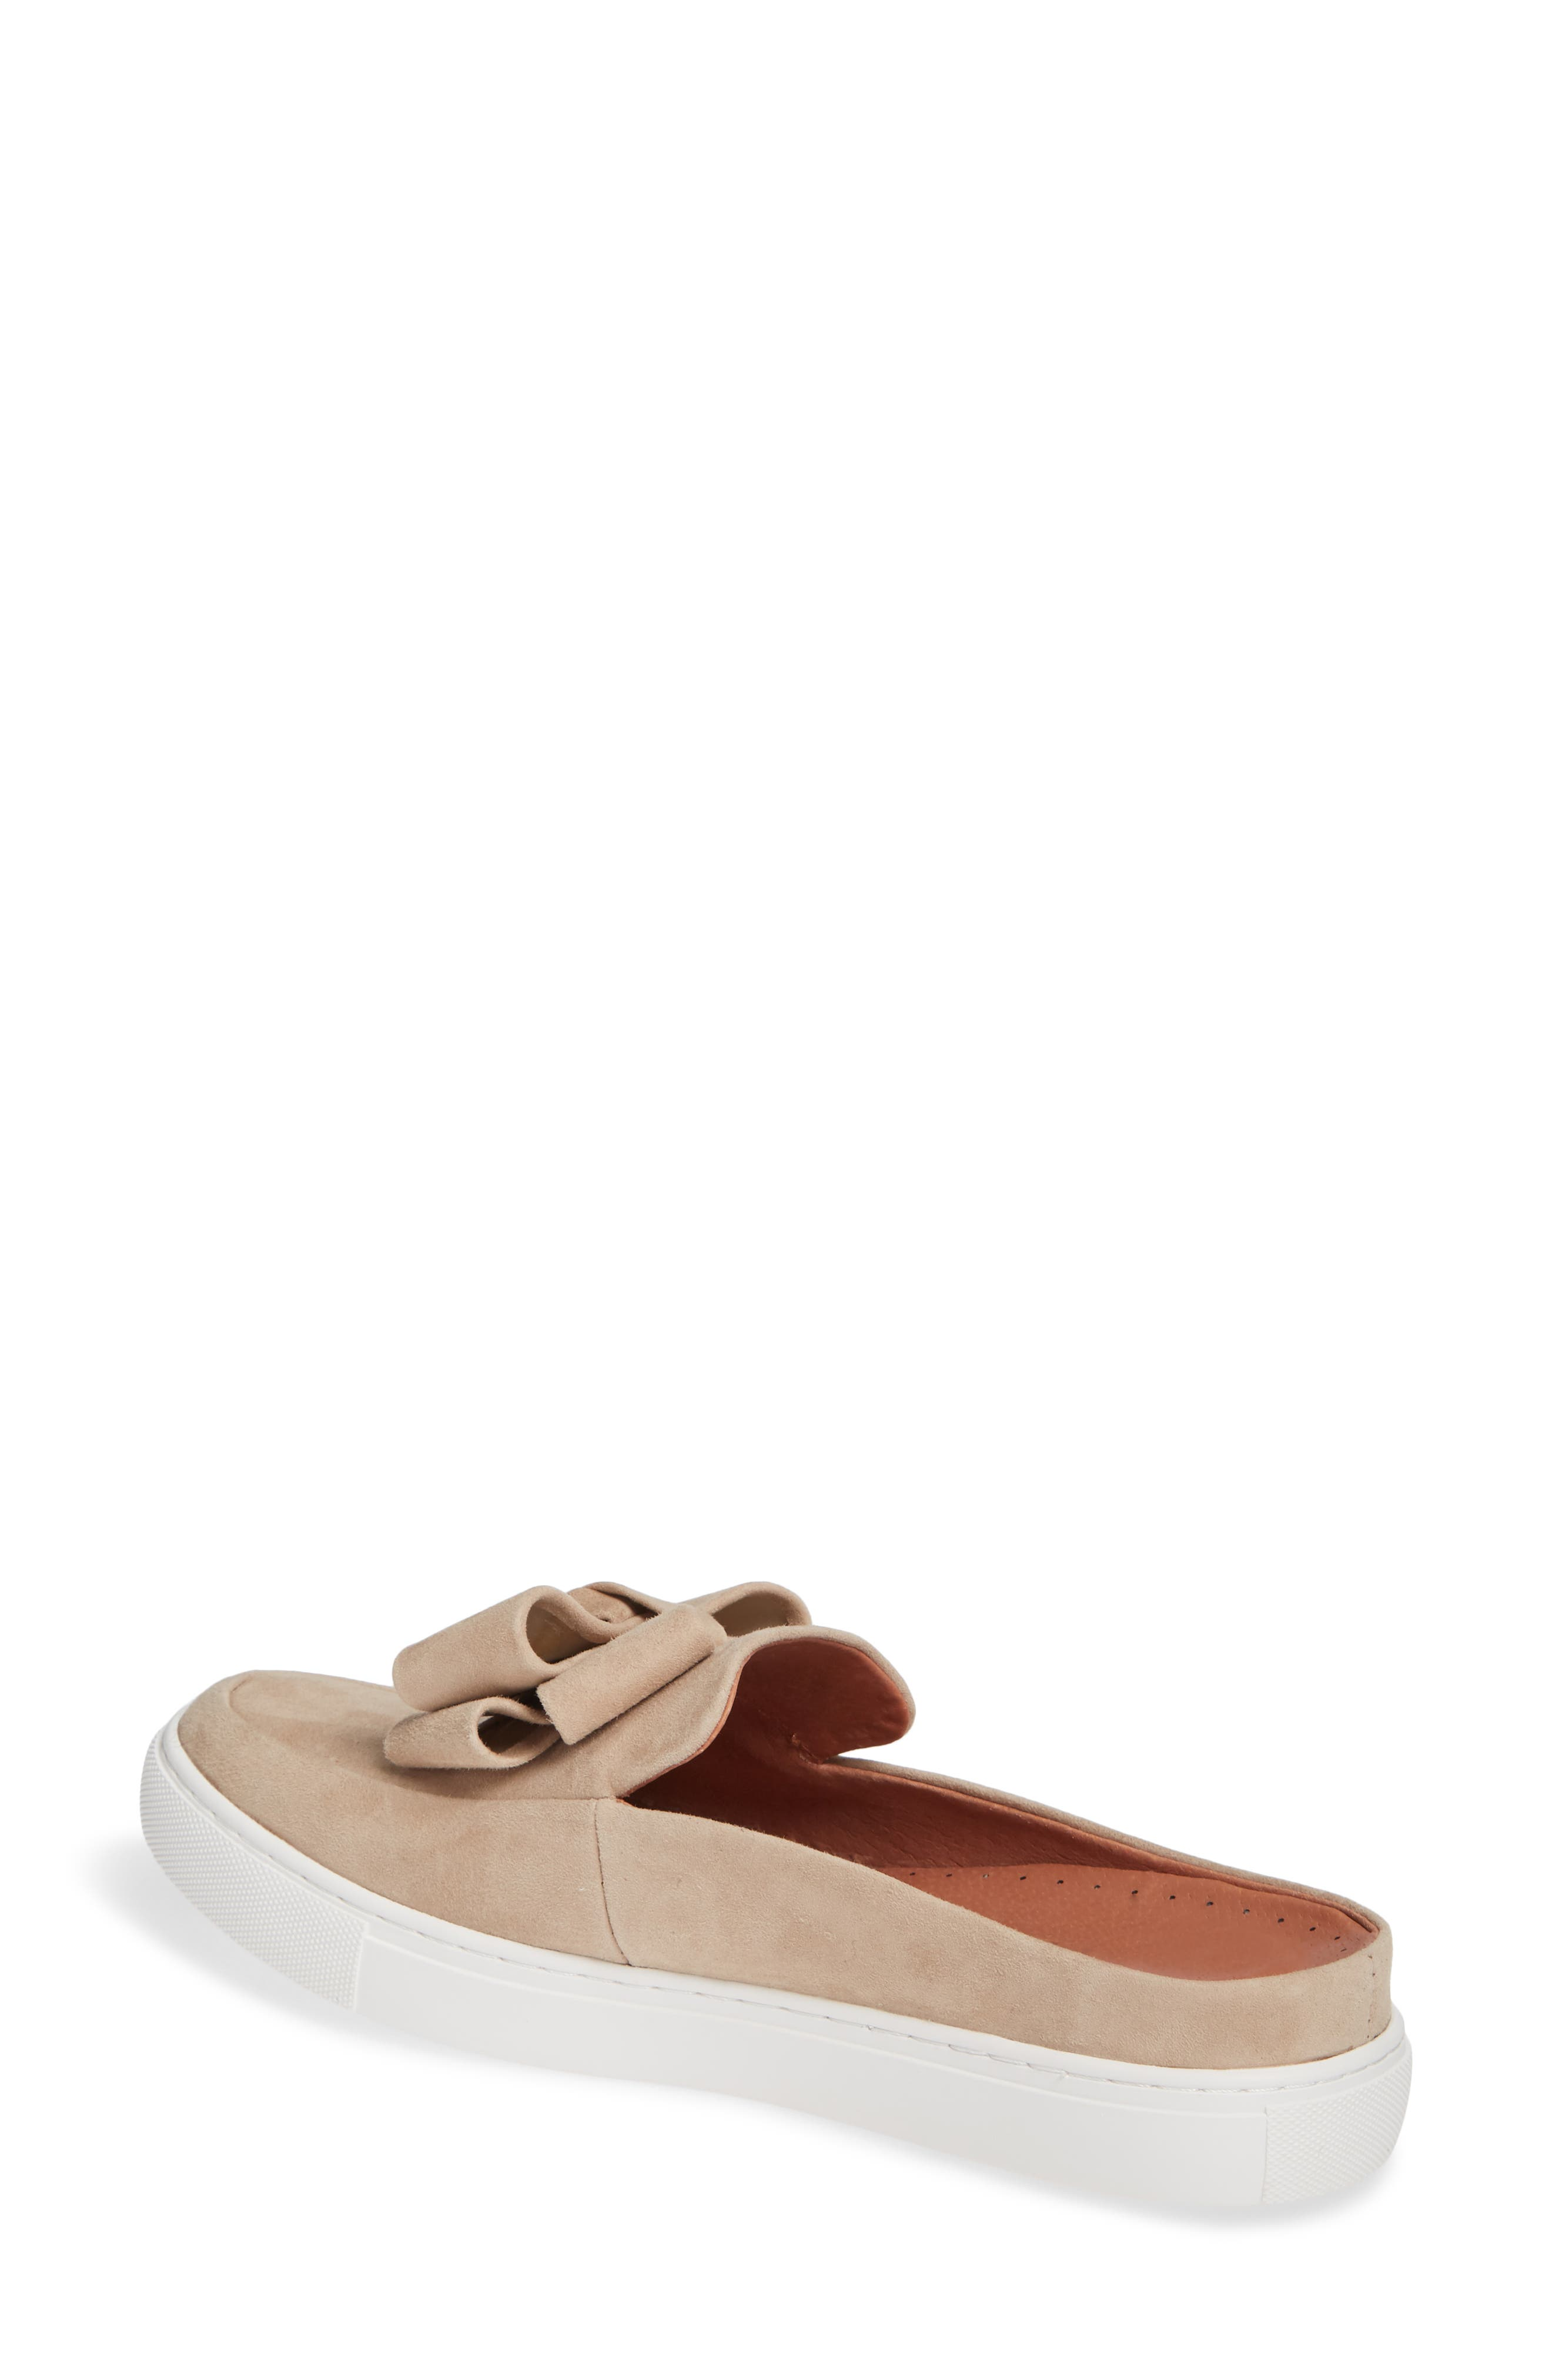 GENTLE SOULS BY KENNETH COLE, Rory Bow Mule, Alternate thumbnail 2, color, 233